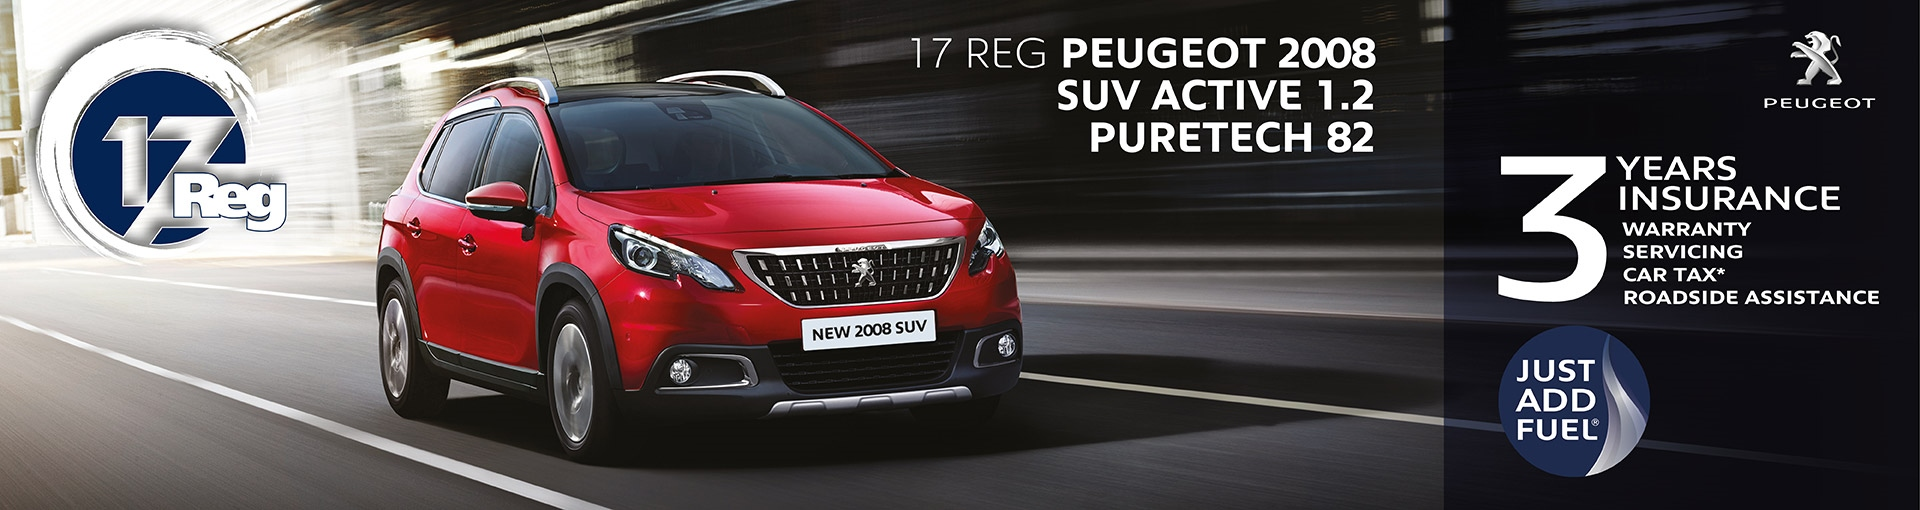 Peugeot 2008 SUV Just Add Fuel from 18 years old